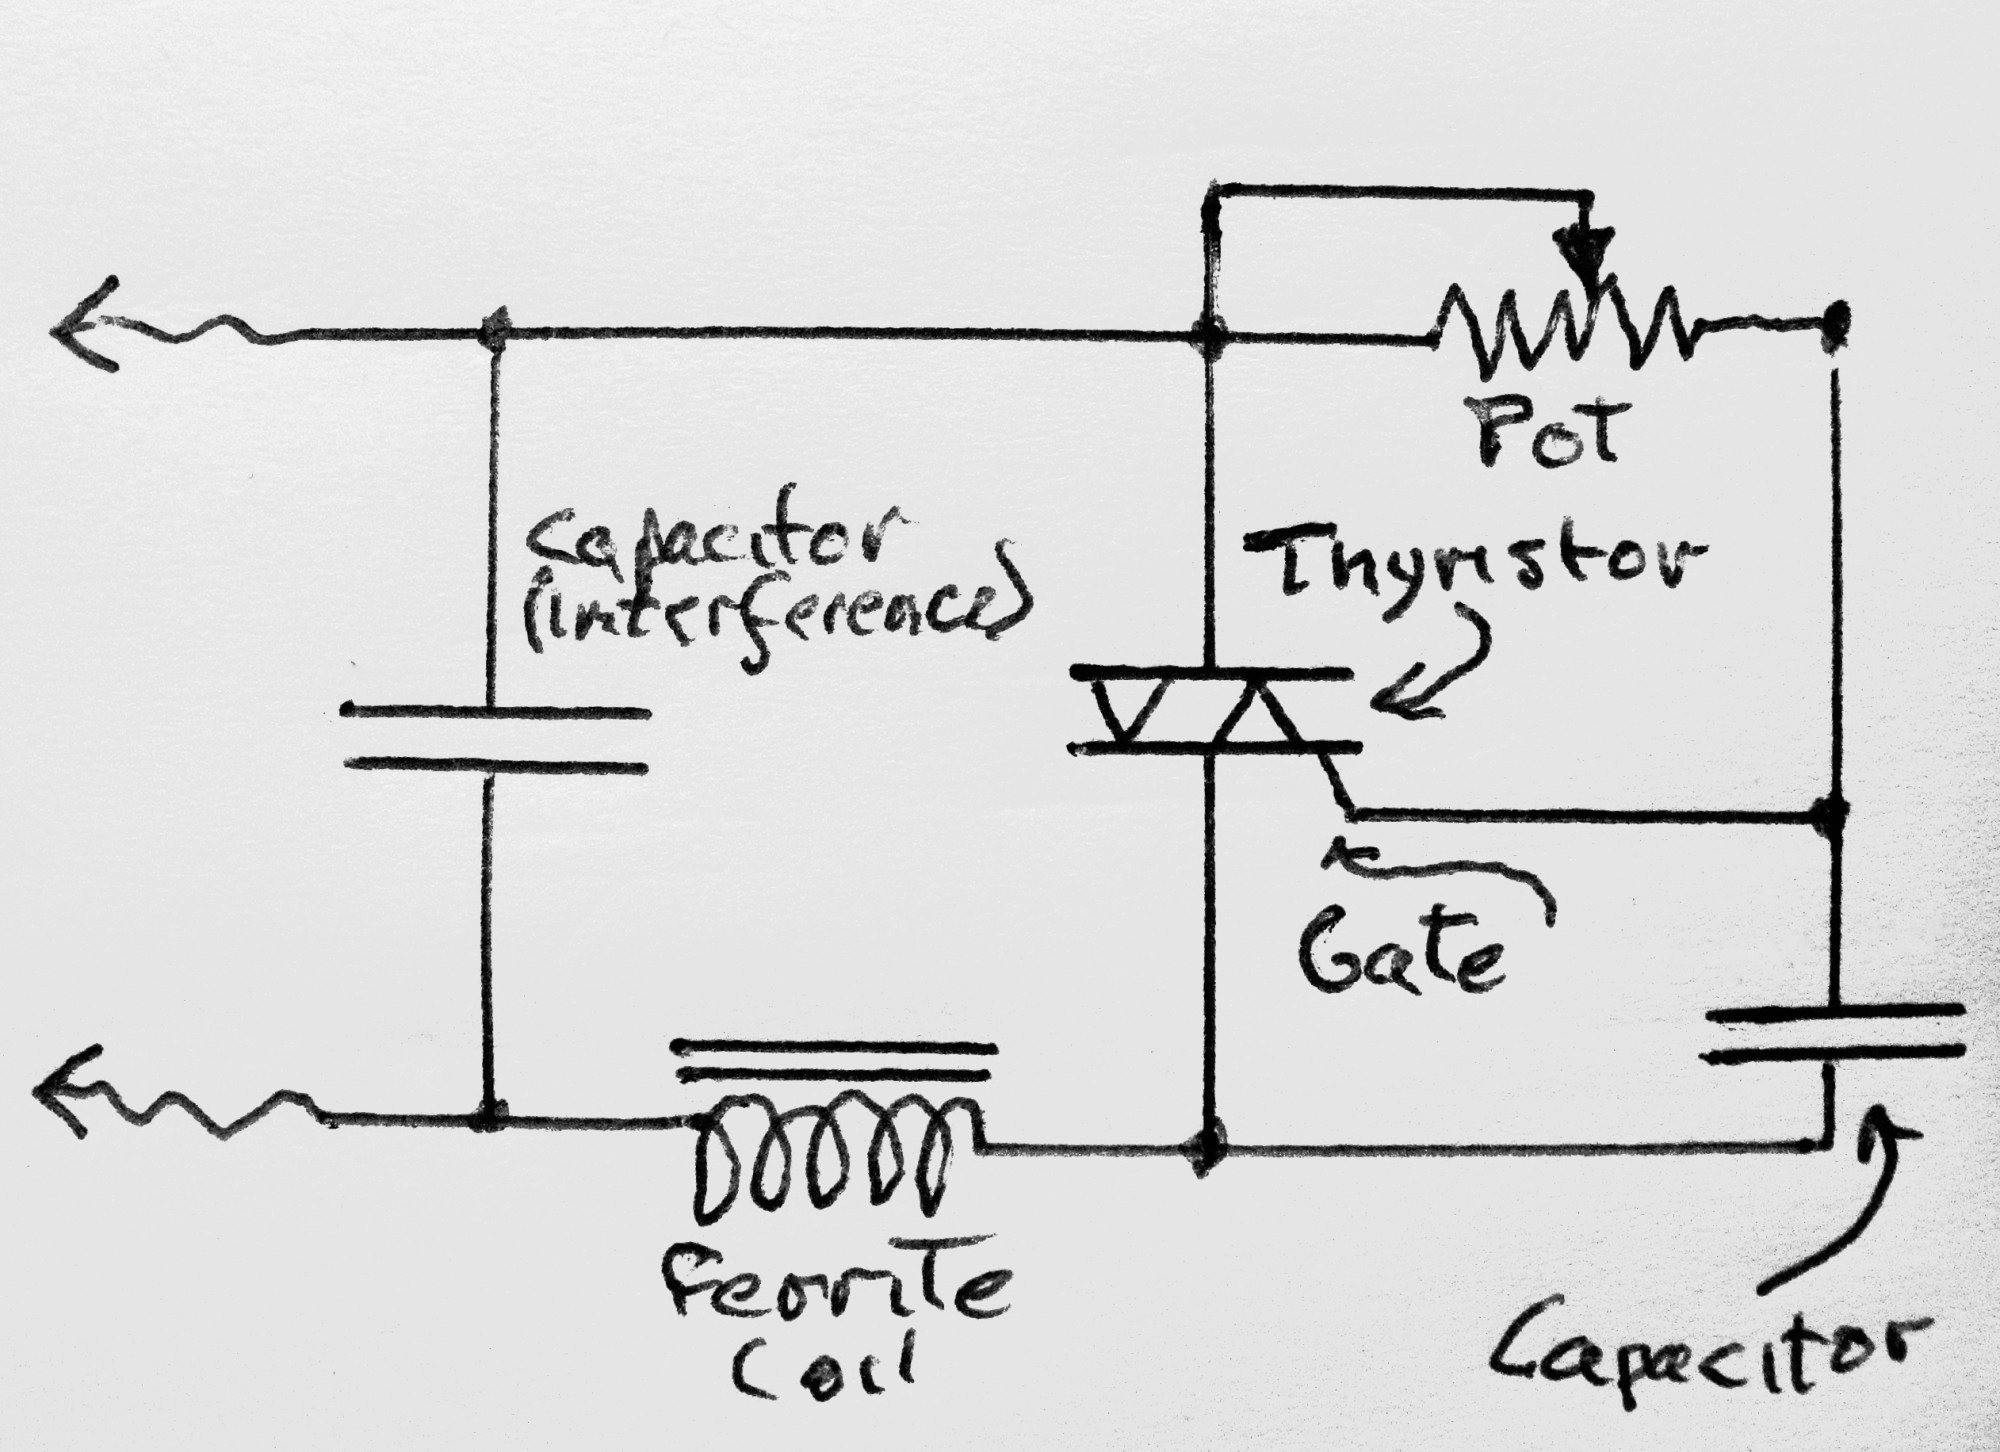 hight resolution of circuit for the leviton dimmer the potentiomer thyristor and capacitor comprise the basic